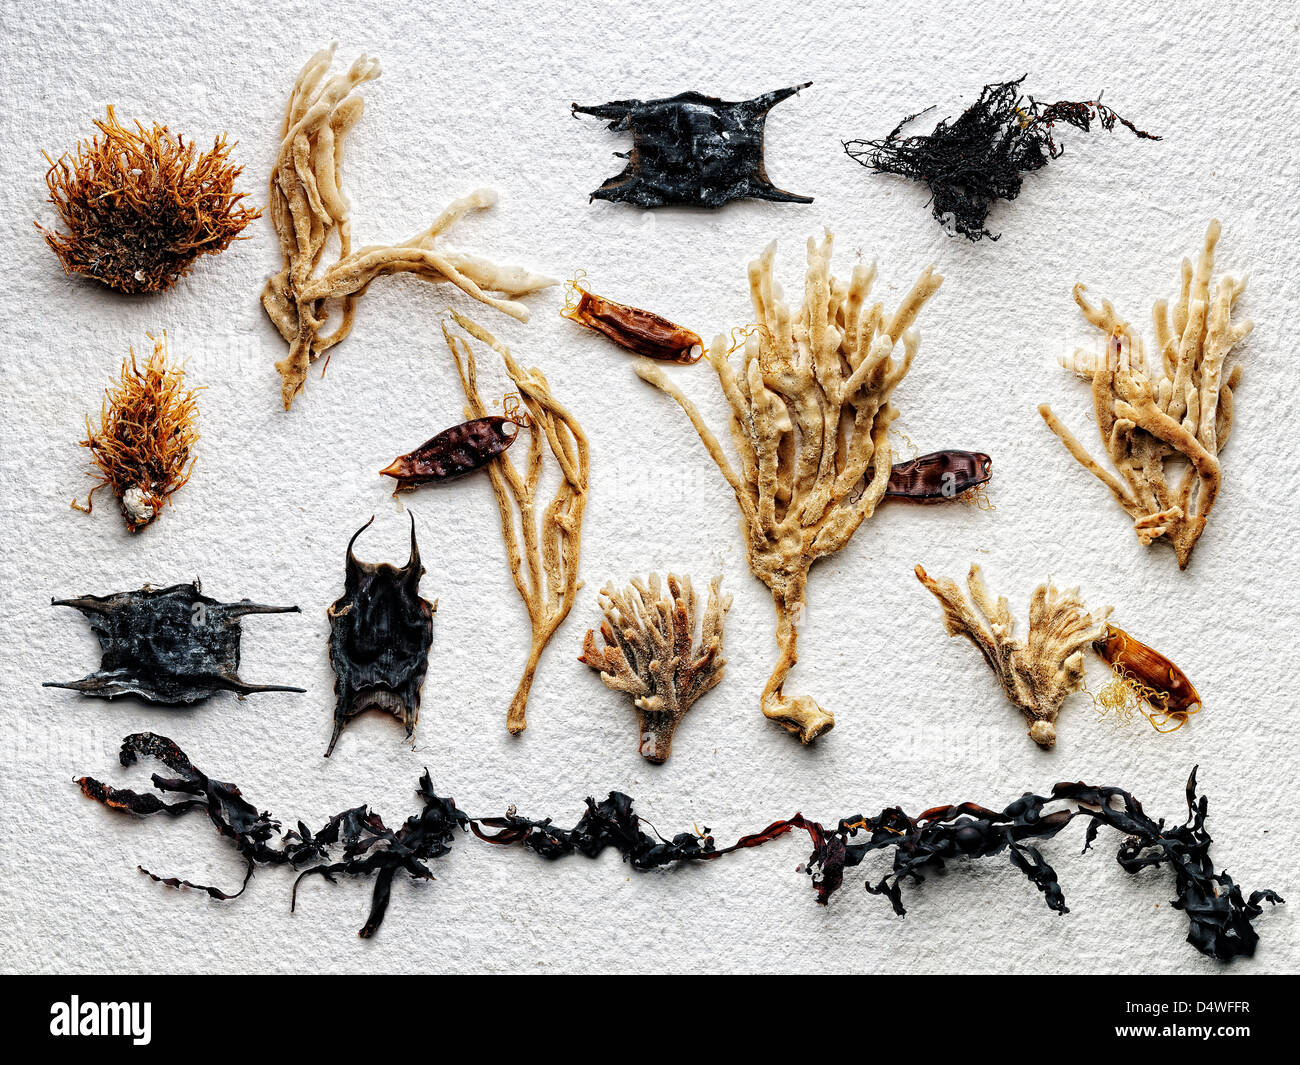 Dried plants arranged on paper - Stock Image